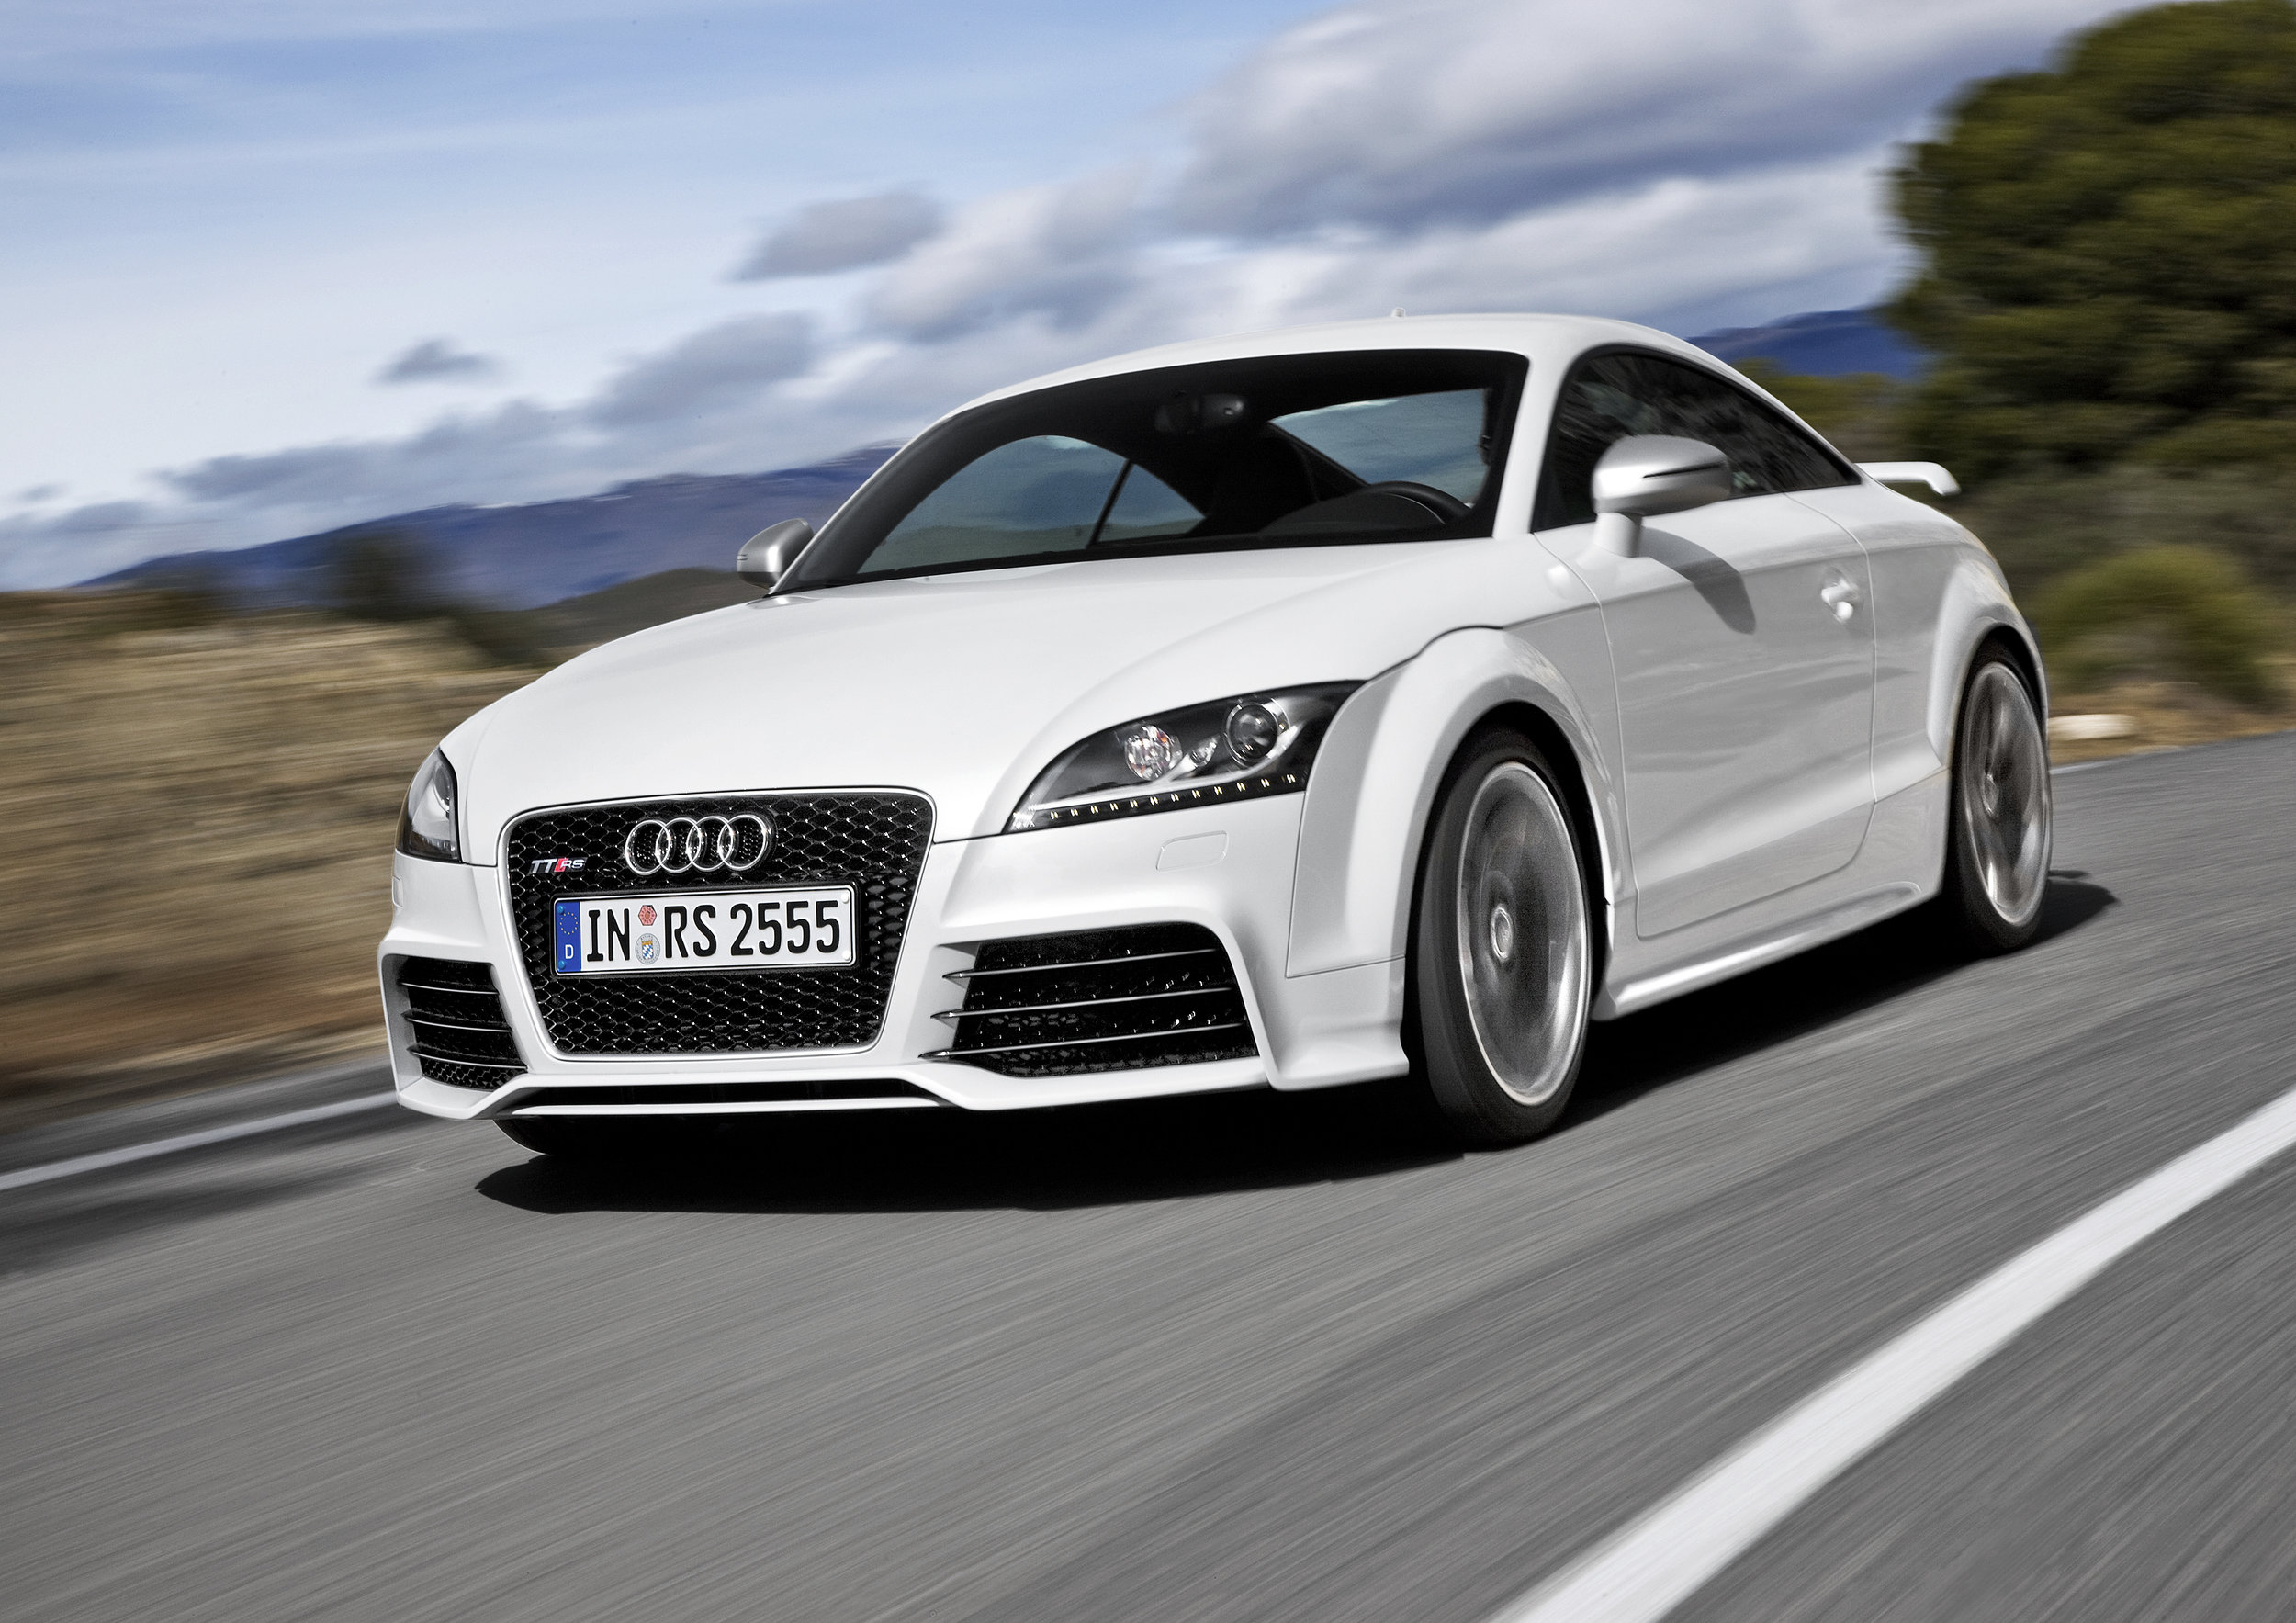 Image from http://www.caranddriver.com/audi/tt-rs